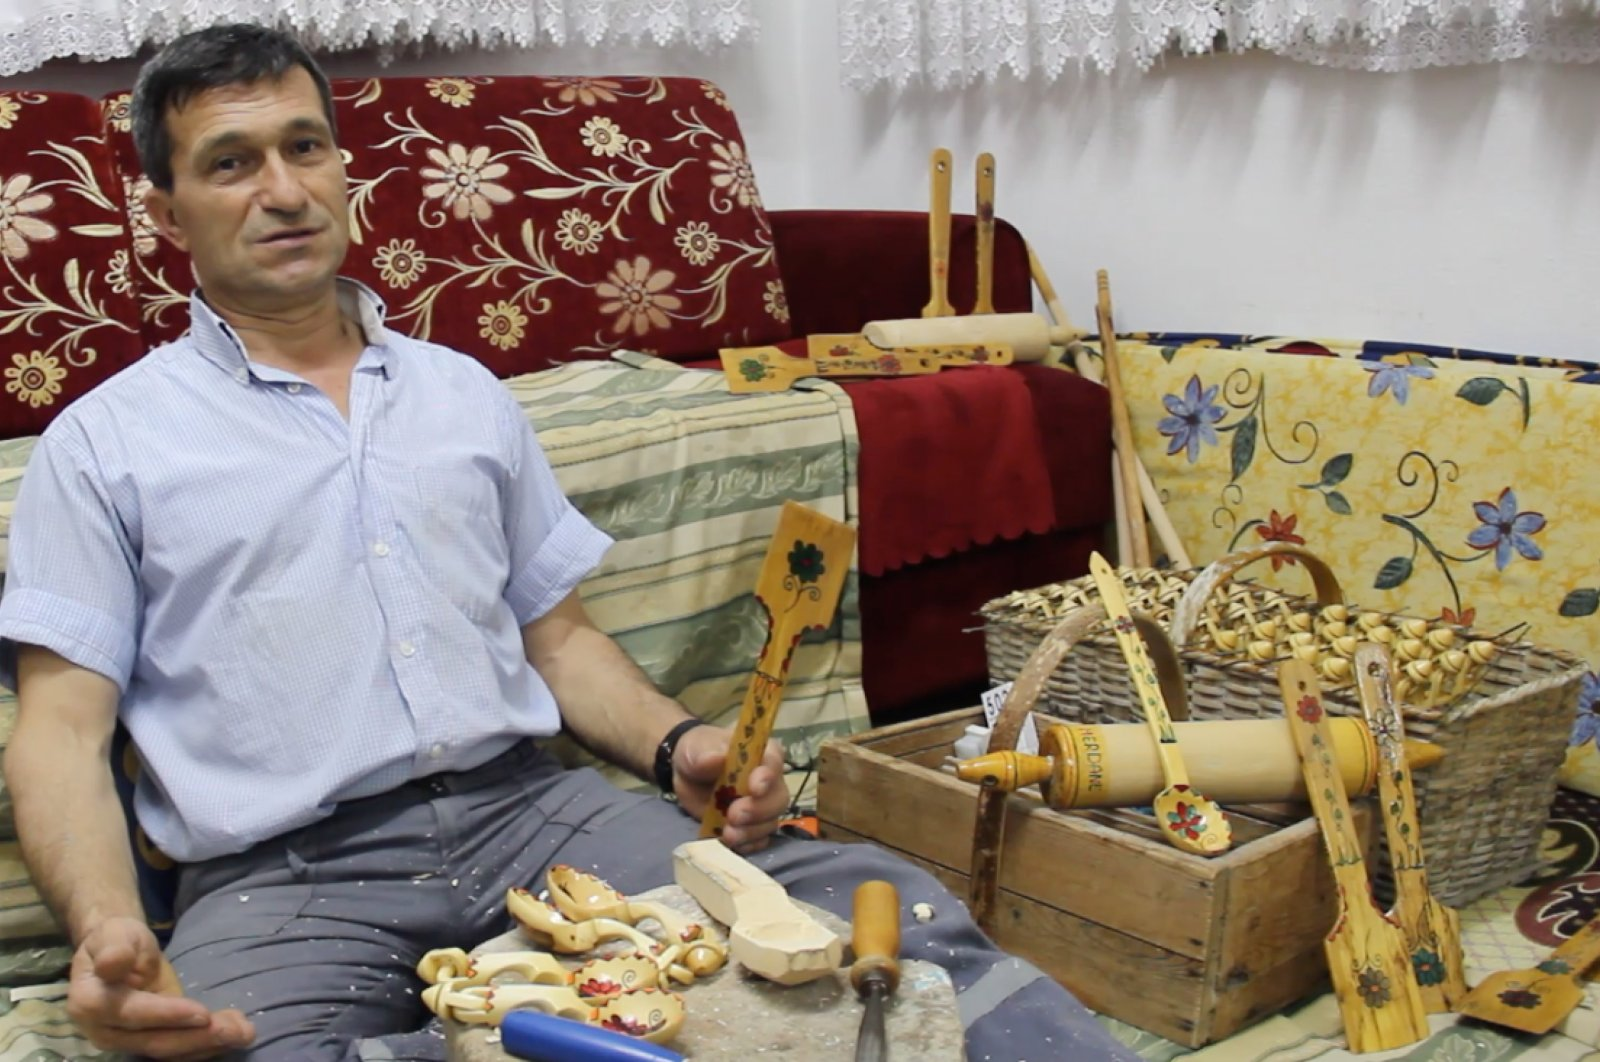 Lütfü Uğur poses with his wooden spoons, tablespoons, ladles and other products. (AA Photo)